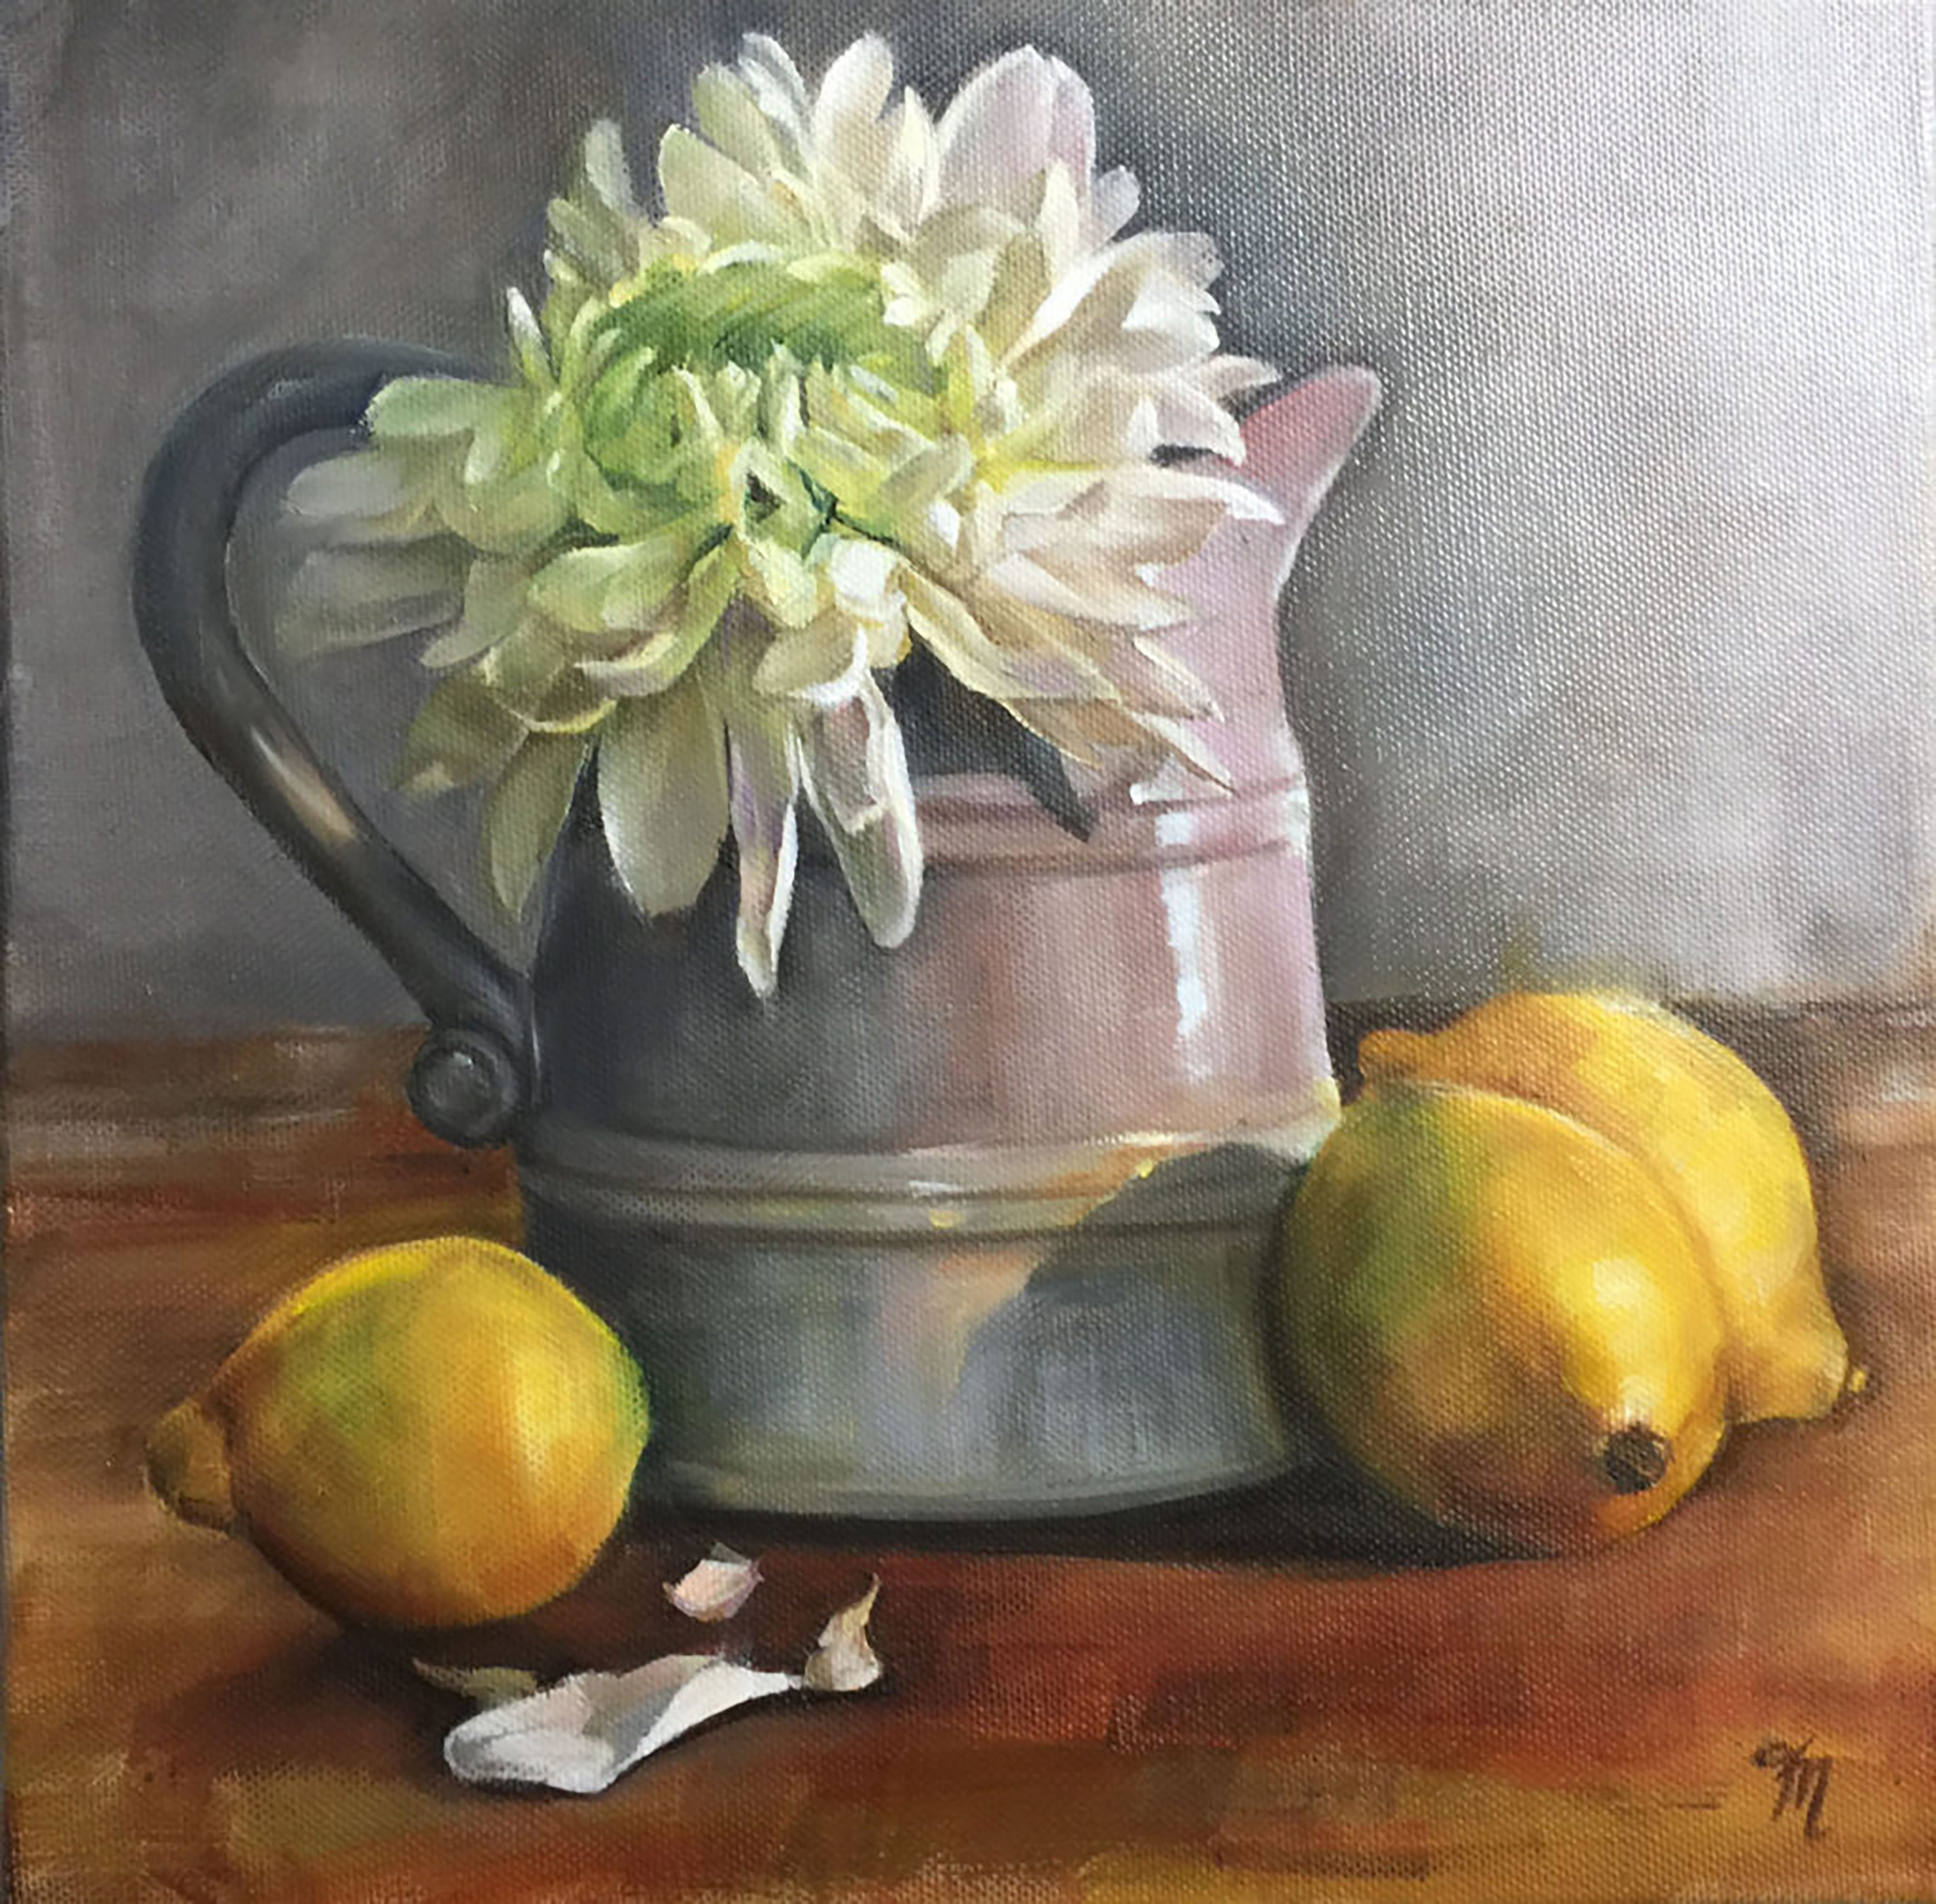 'Shining Light', oil painting of beautiful white chrysanthemums in a grey jug with lemons by Trish Mitchell